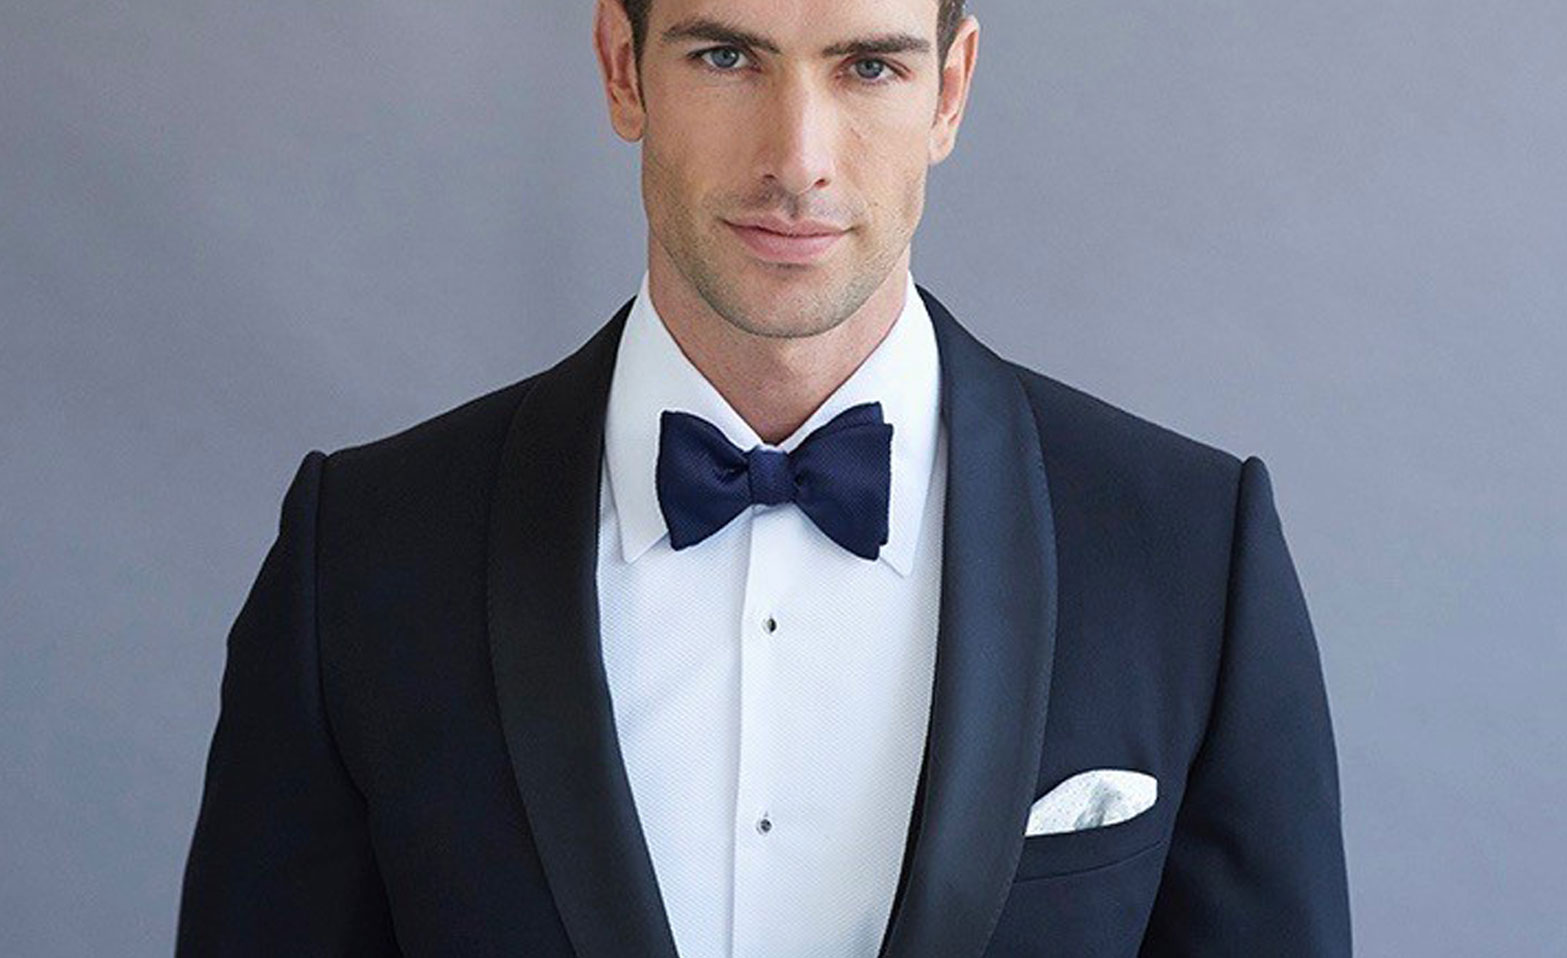 wedding suits for men